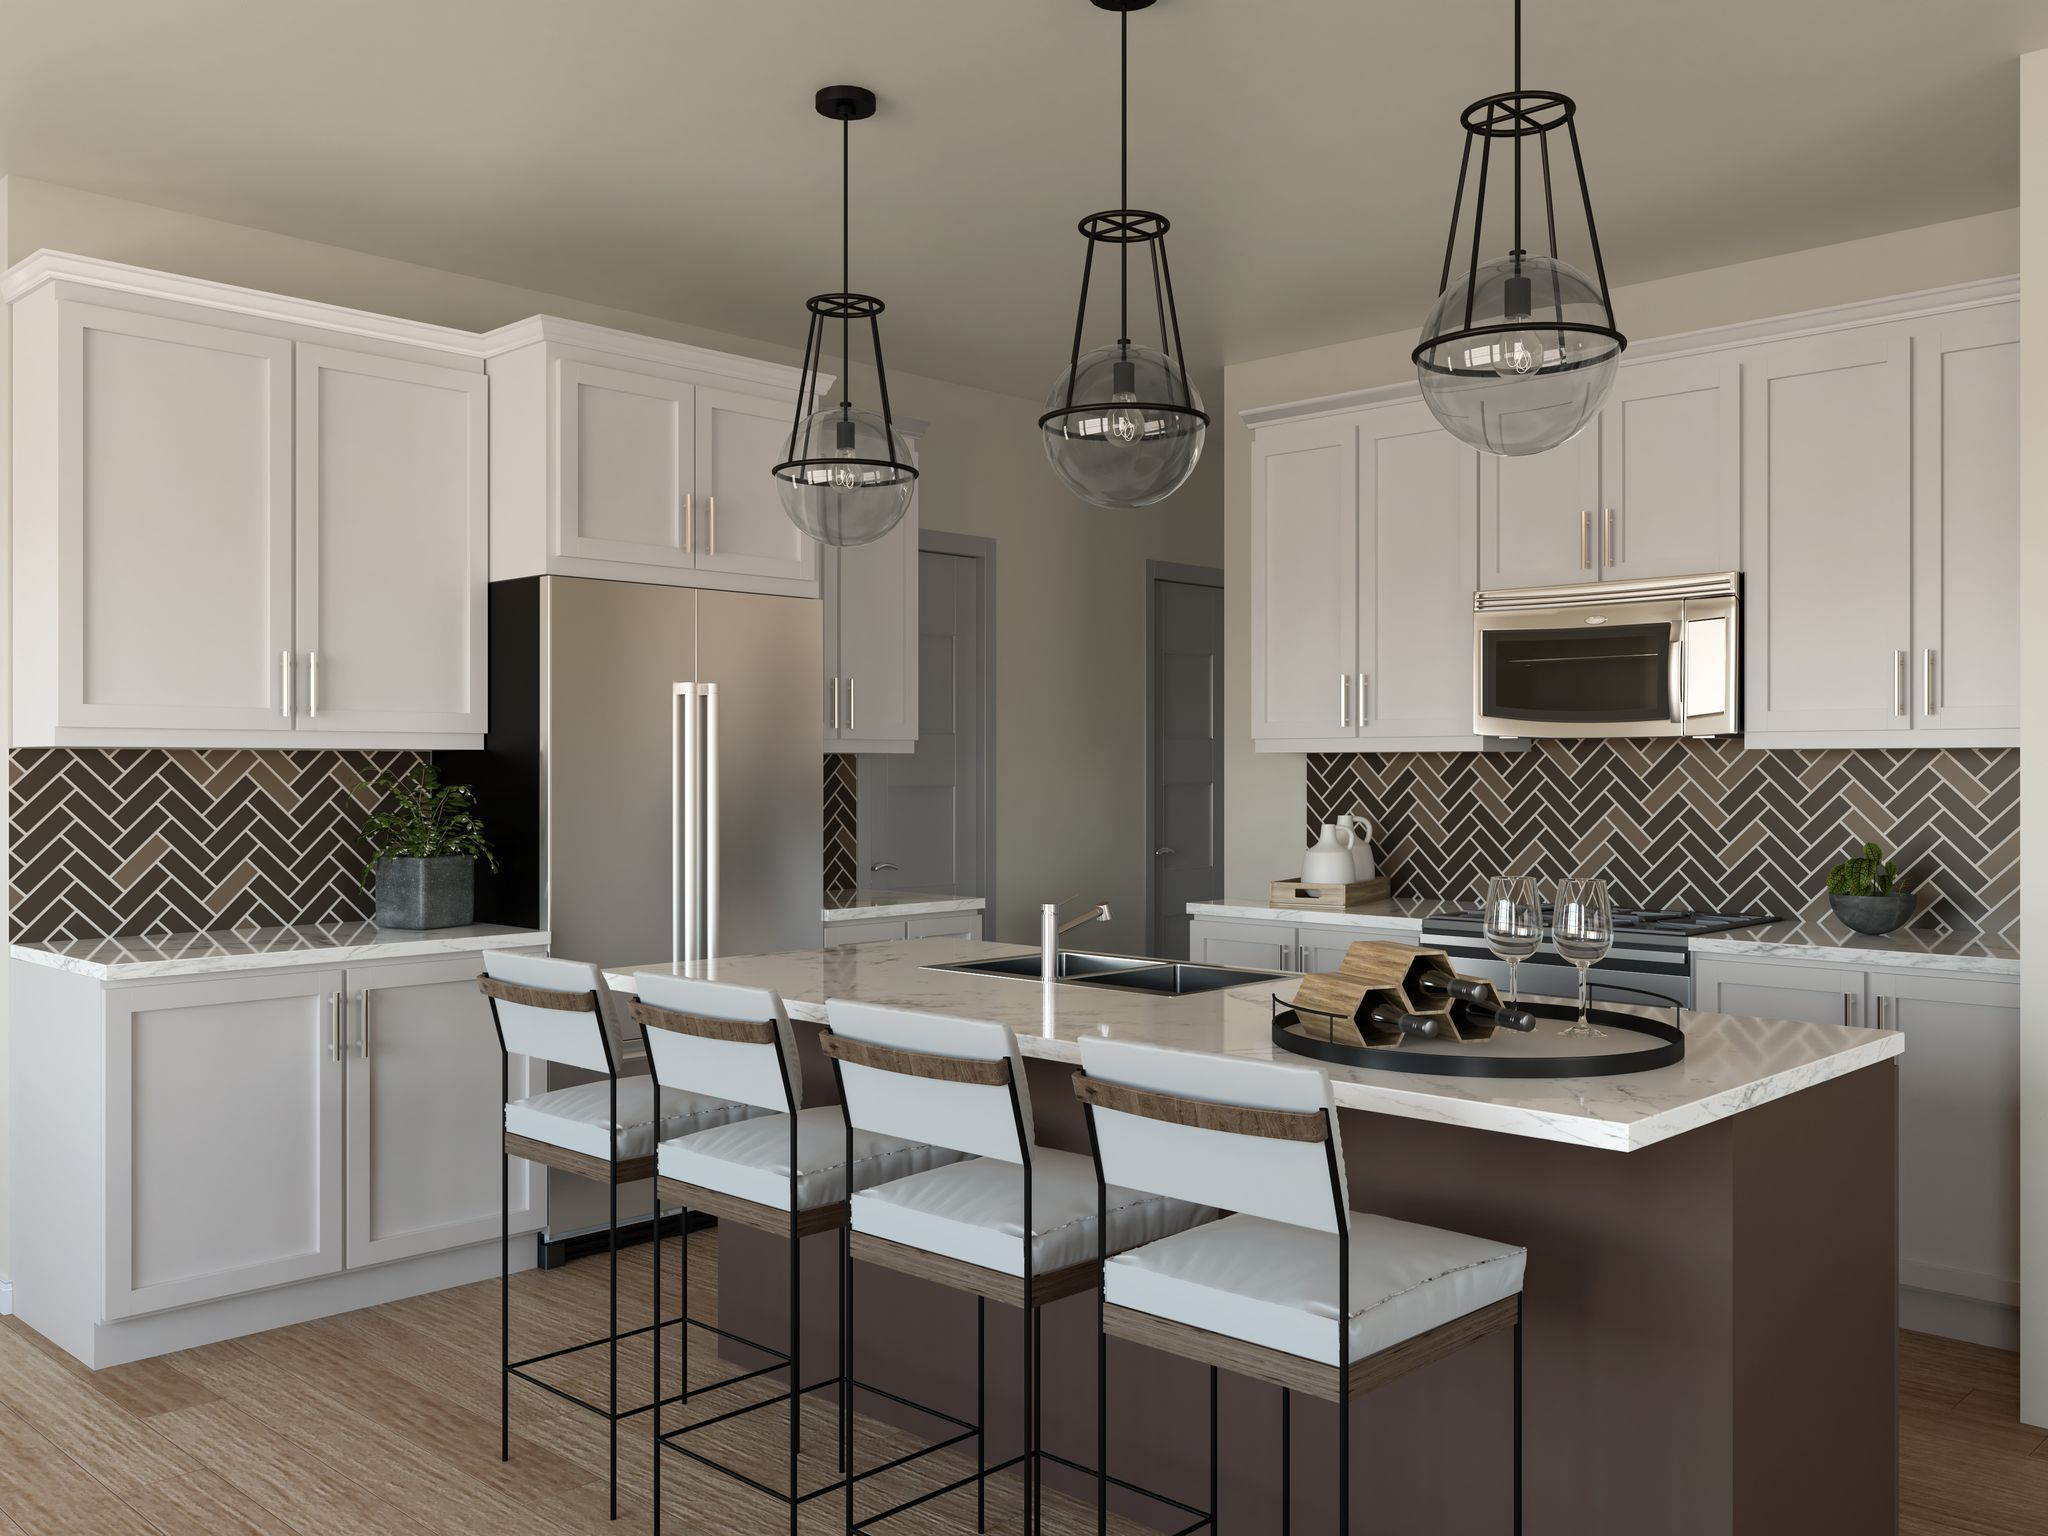 Kitchen featured in the Residence 3 By Santa Ynez Valley Construction in Reno, NV